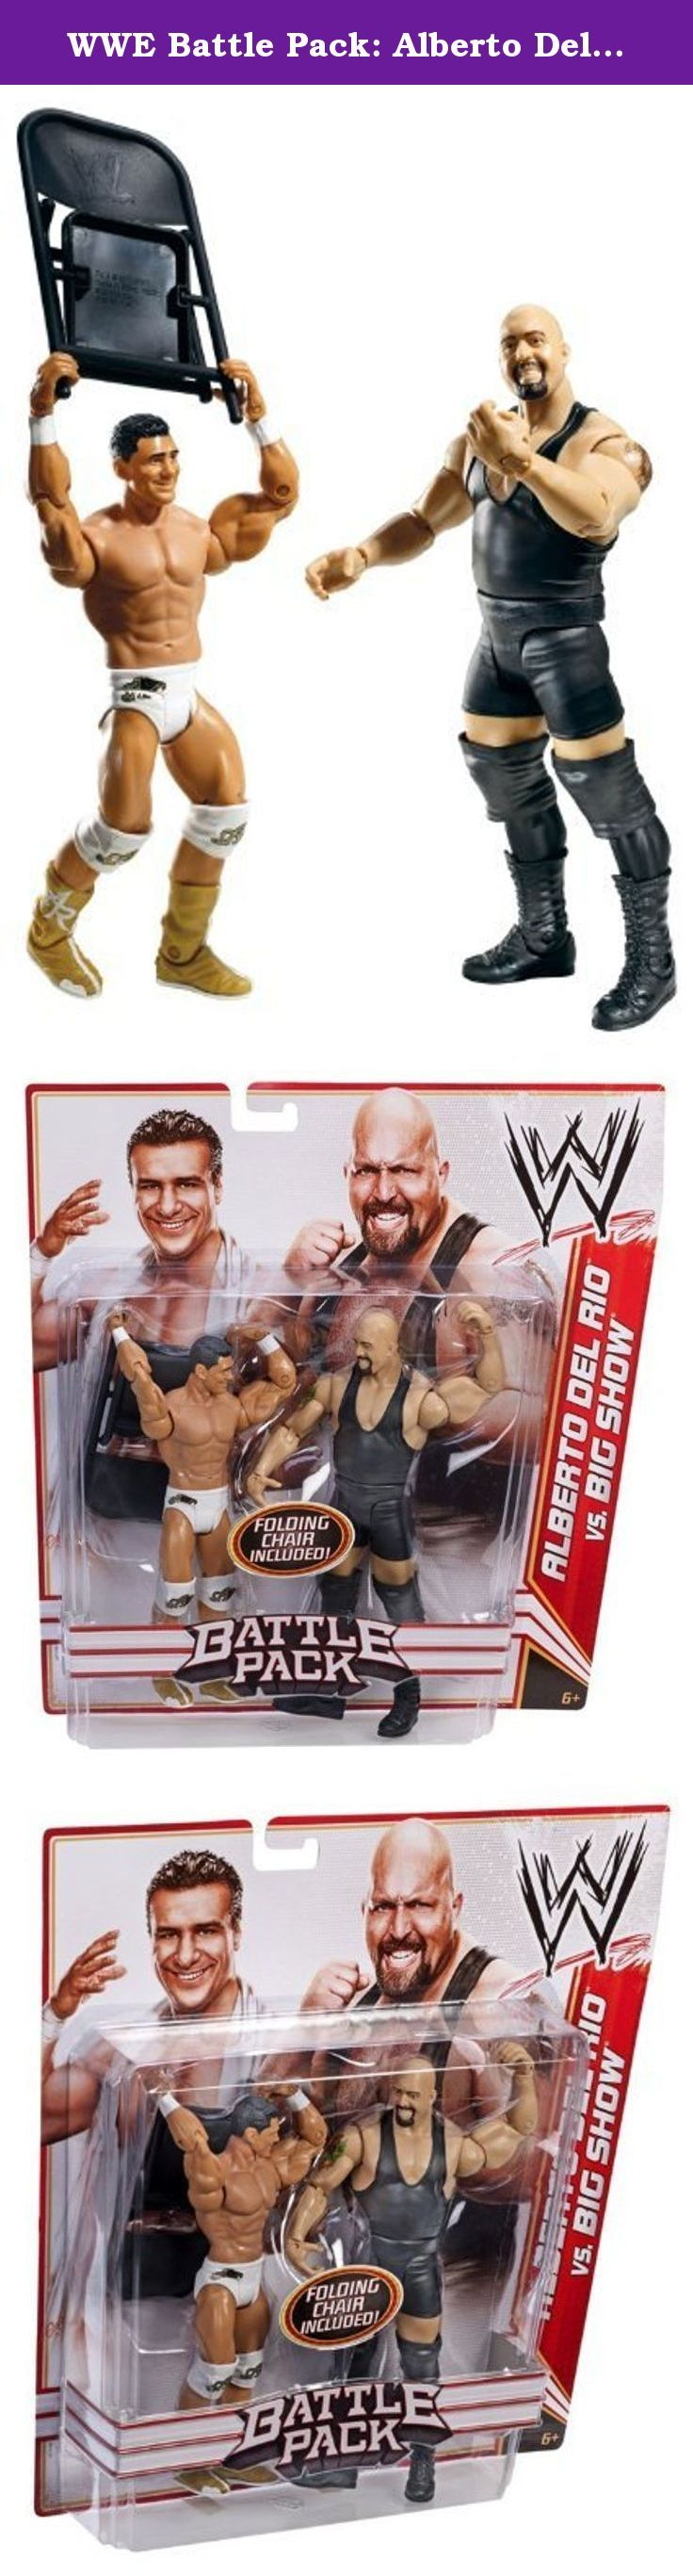 WWE Battle Pack: Alberto Del Rio vs. Big Show Figure 2-Pack Series 16 Toy [parallel import goods]. It's shipped off from Japan.